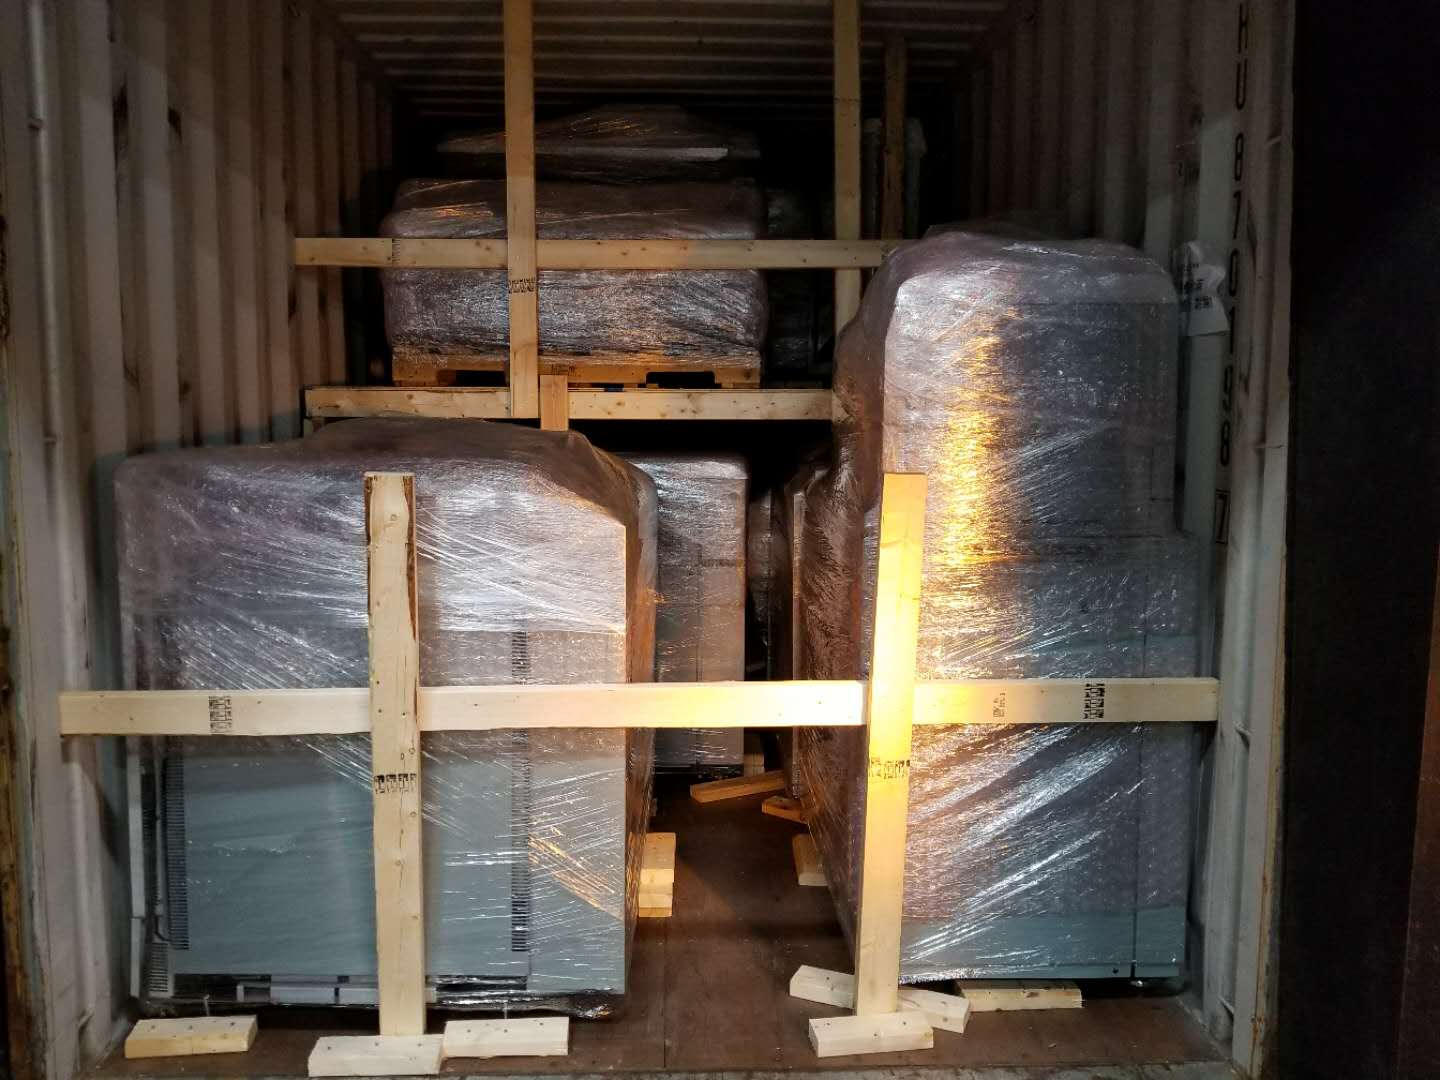 We Export & Build Our Own Containers - Our Professional Warehouse Staff Will Wrap, Protect, And Securely Pack Your Machines.We Build Our Containers From Scratch Using Our Own Team So We Are Able To Offer You Savings Through Our High Quality Packing Services, While Ensuring The Safe Delivery Of Your Machines.